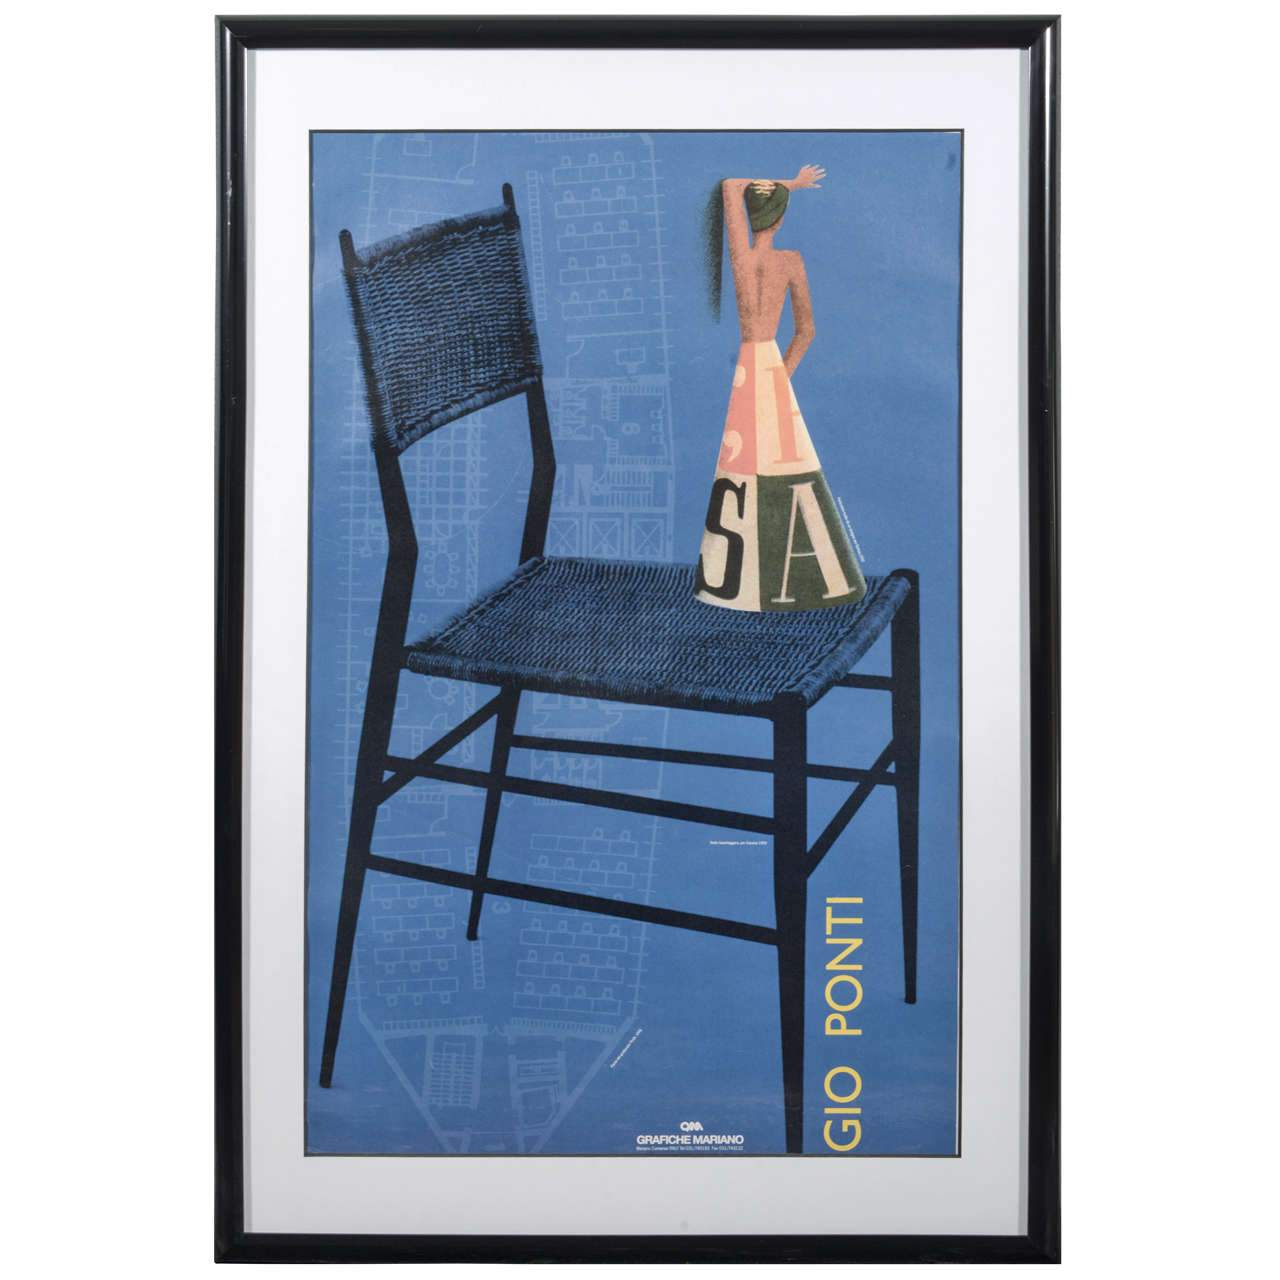 Italian Grafiche Mariano 20th Century Poster of Gio Ponti Design - The Exchange Int